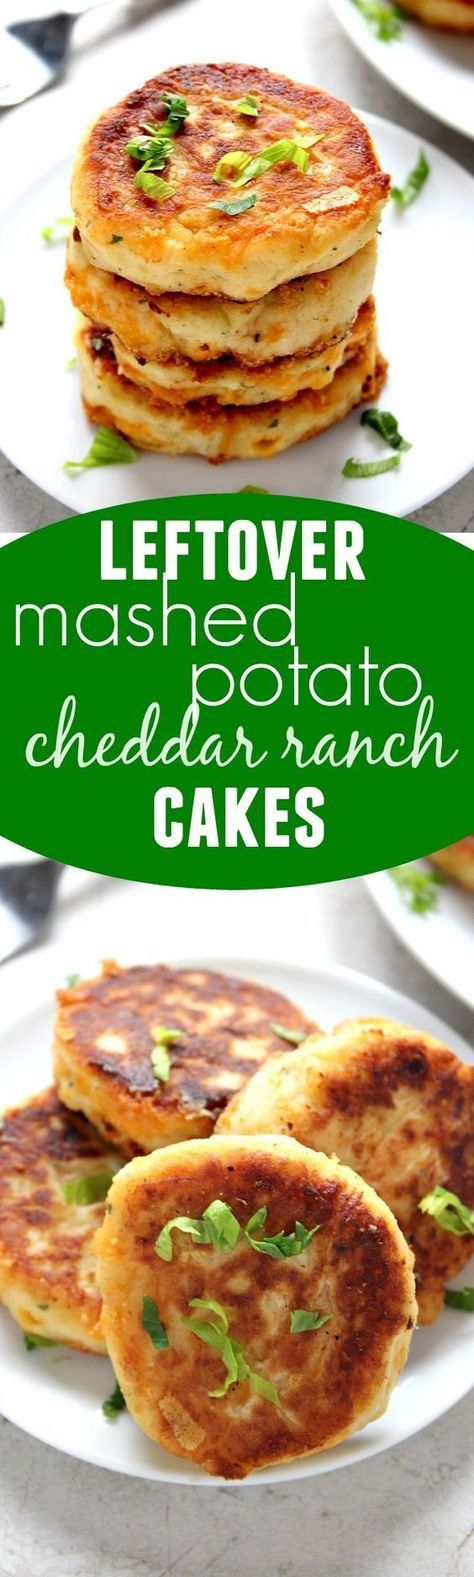 "Leftover Mashed Potato Cheddar Ranch Cakes€"" the best use for your leftover mashed potatoes. Crispy cakes filled with cheese and ranch seasoning. Just 5 ingredients and 20 minutes is all you need to make them!"